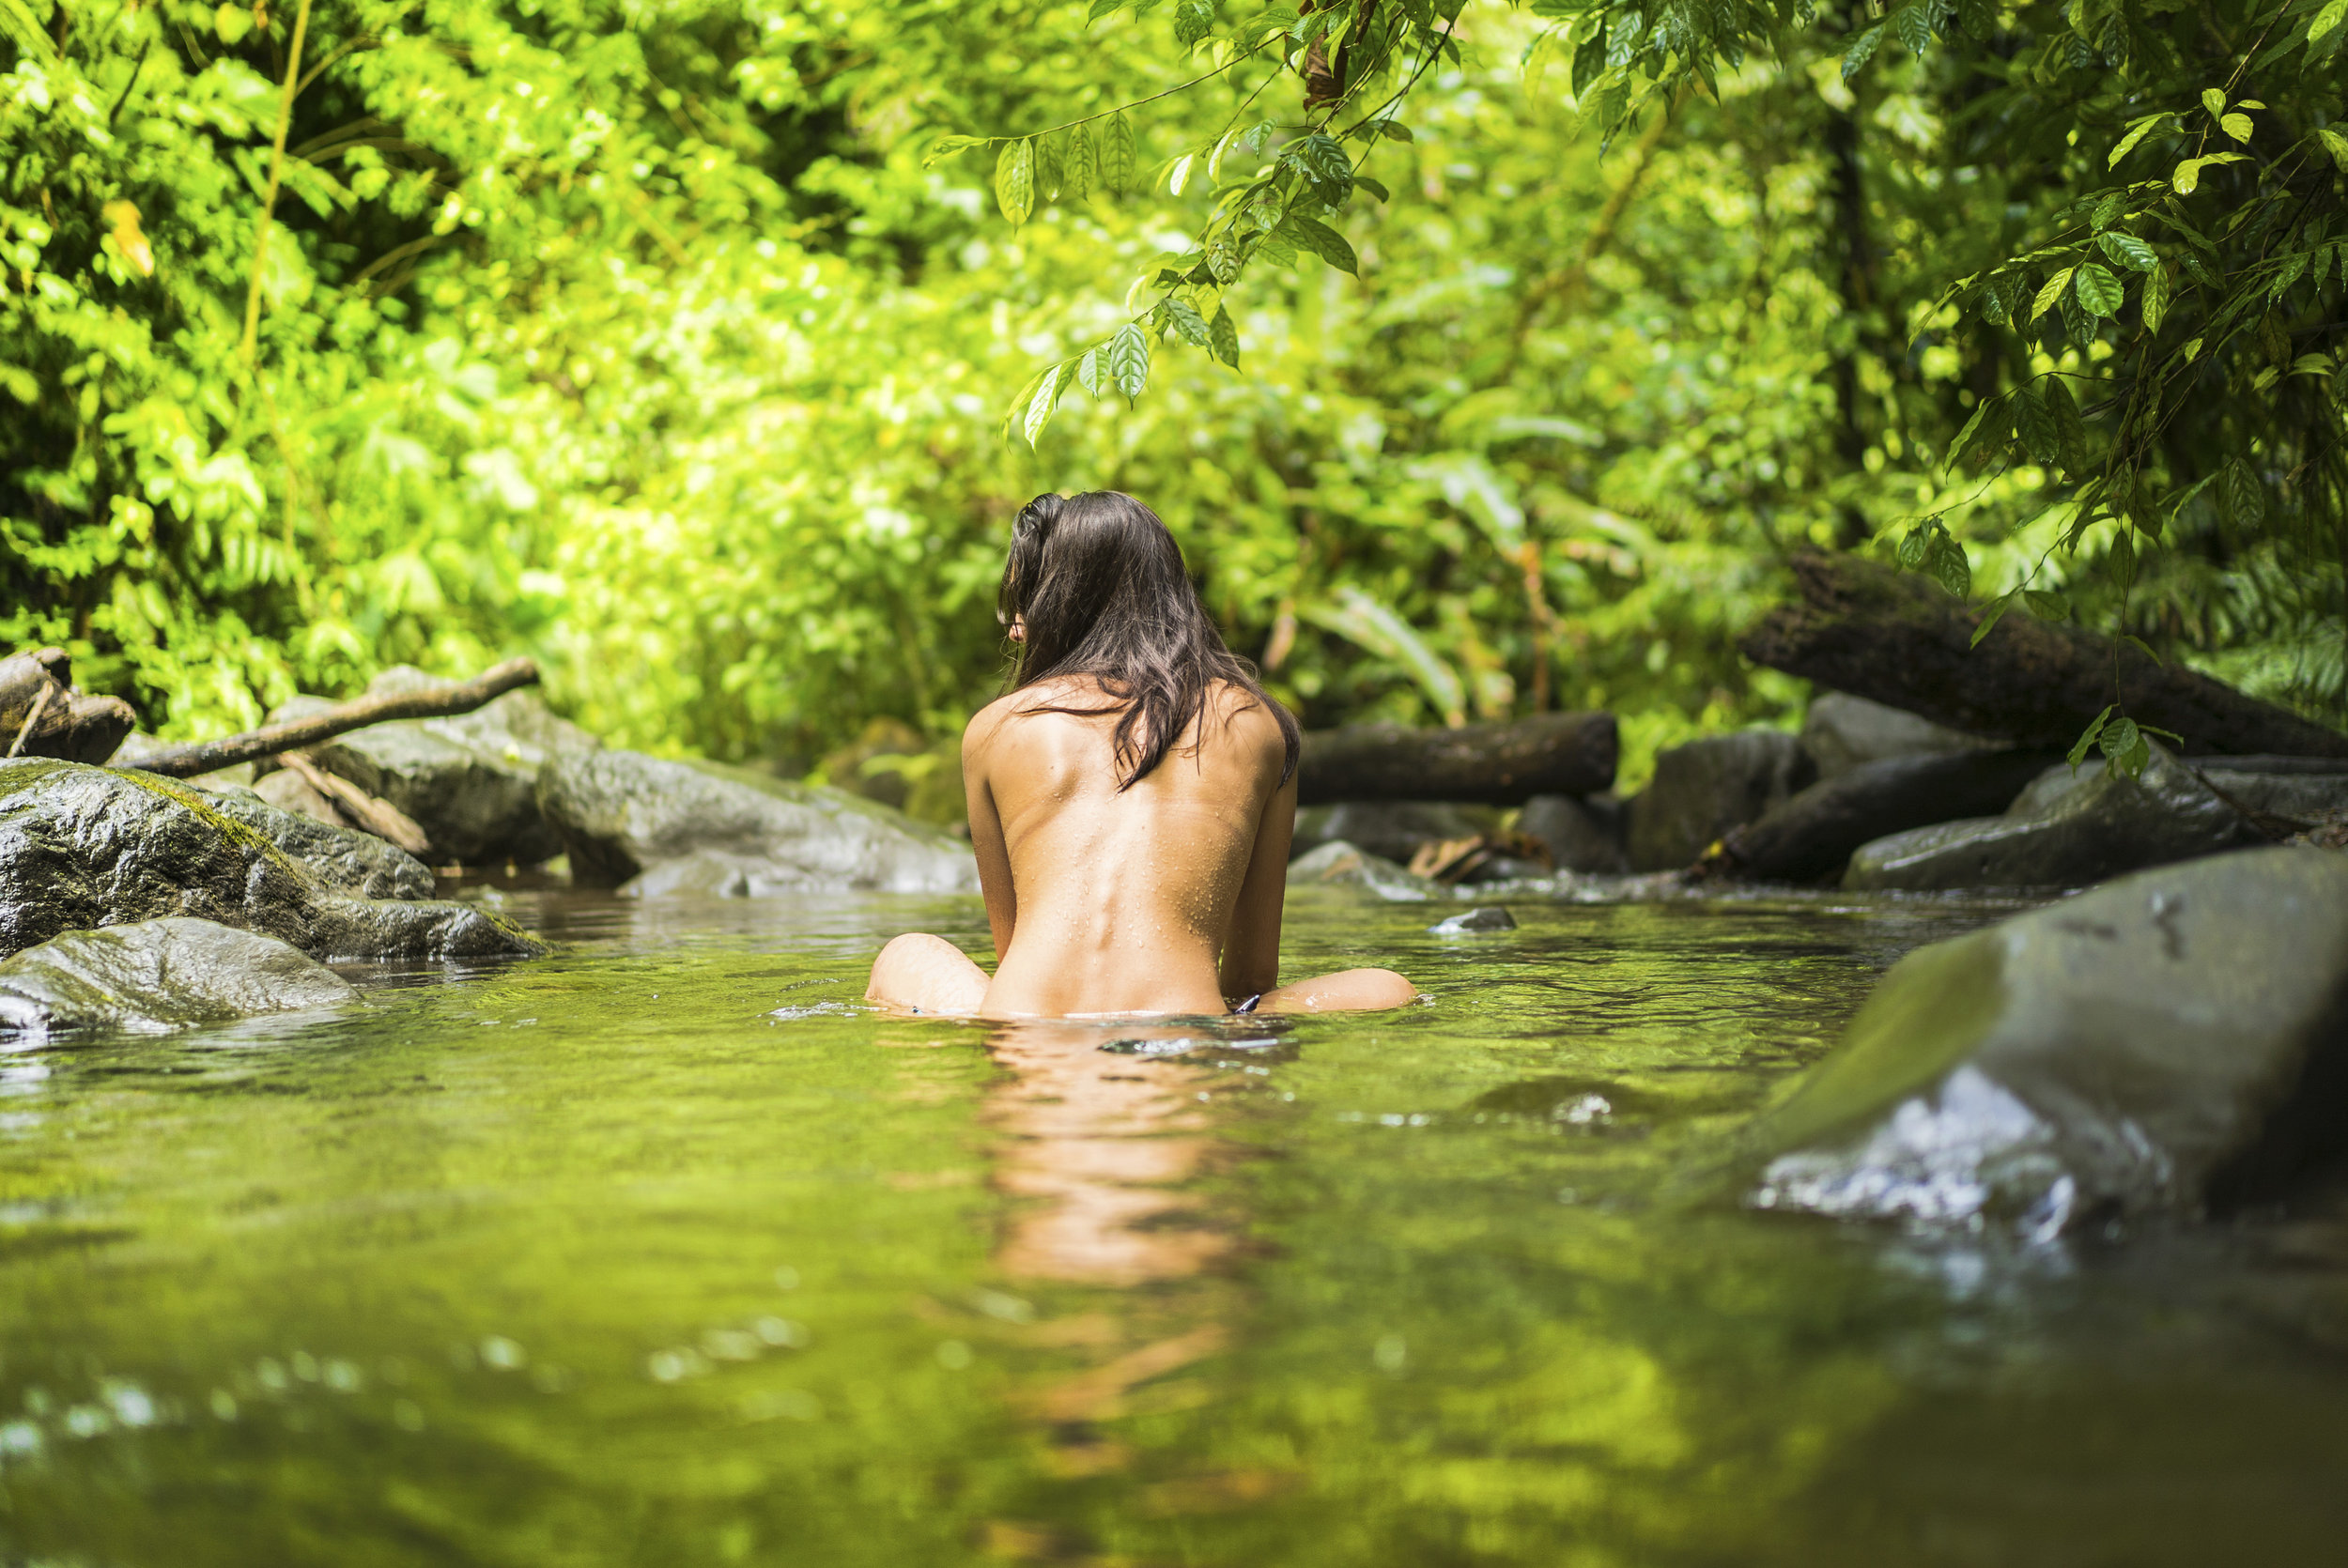 Naked girl in the Costa Rican forest